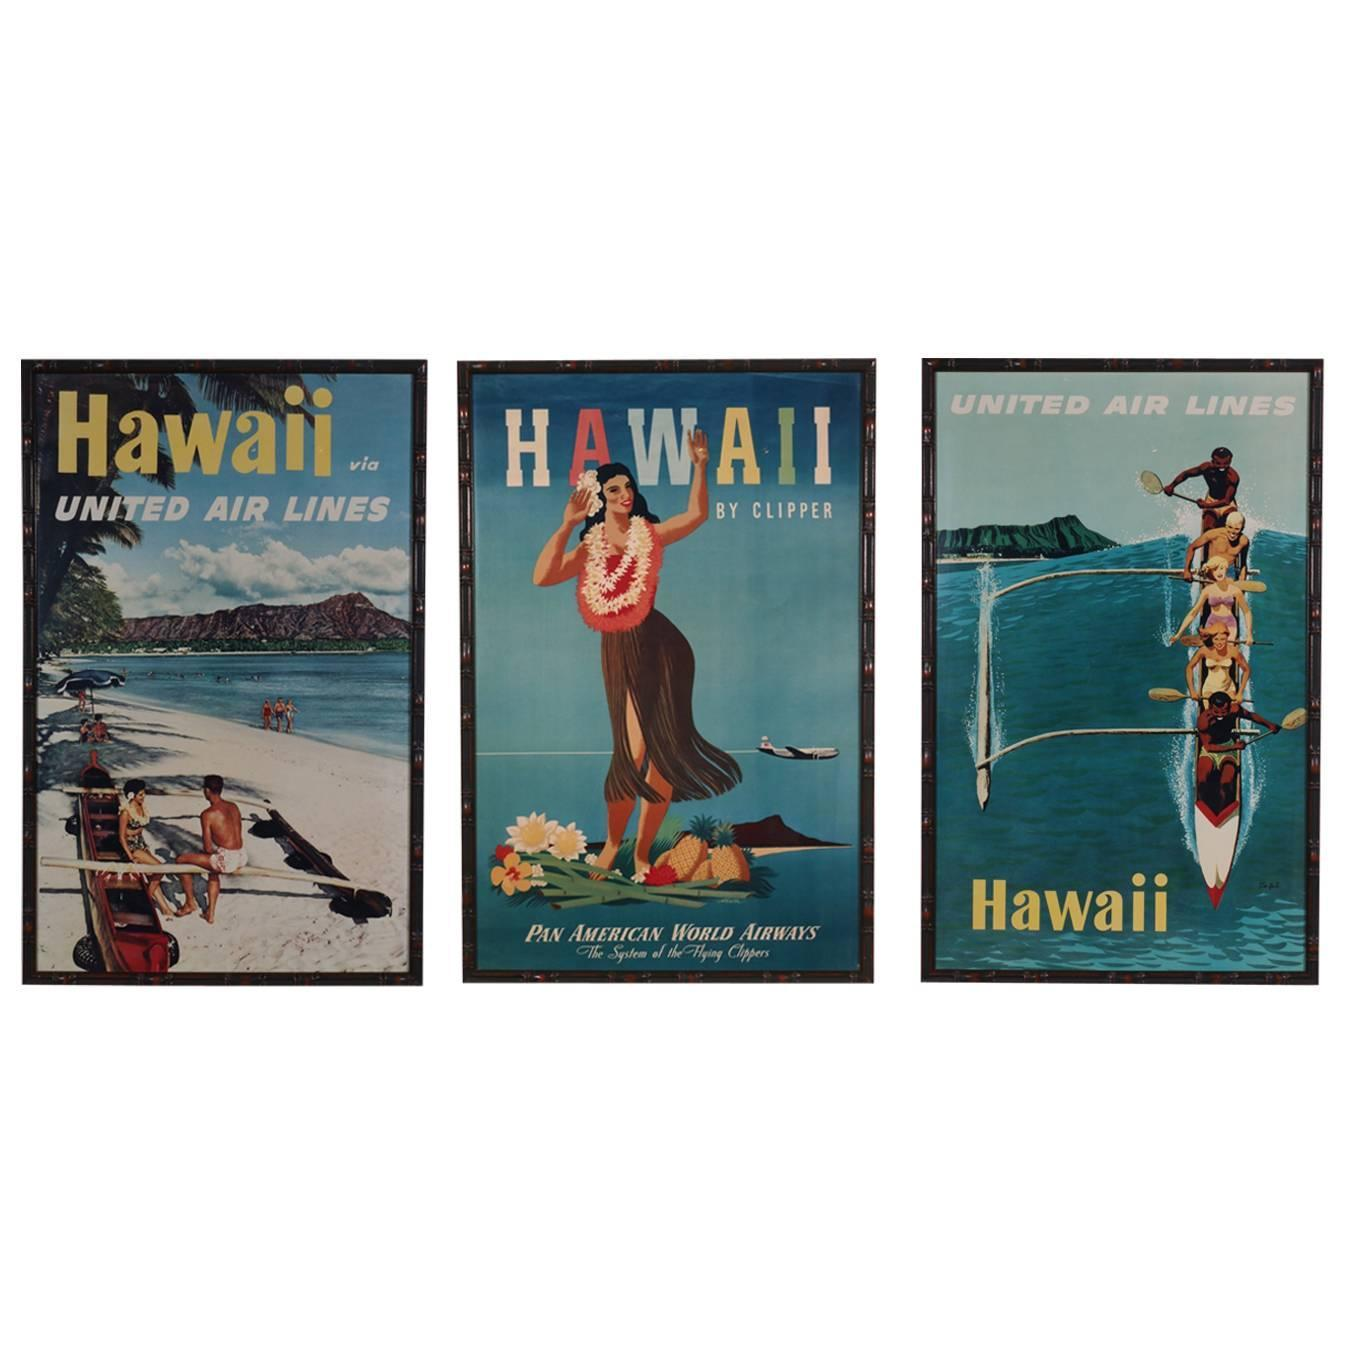 Cheap Posters Yosemite United Air Lines Vintage Travel Poster: Set Of Three All Original Vintage Hawaii Travel Posters